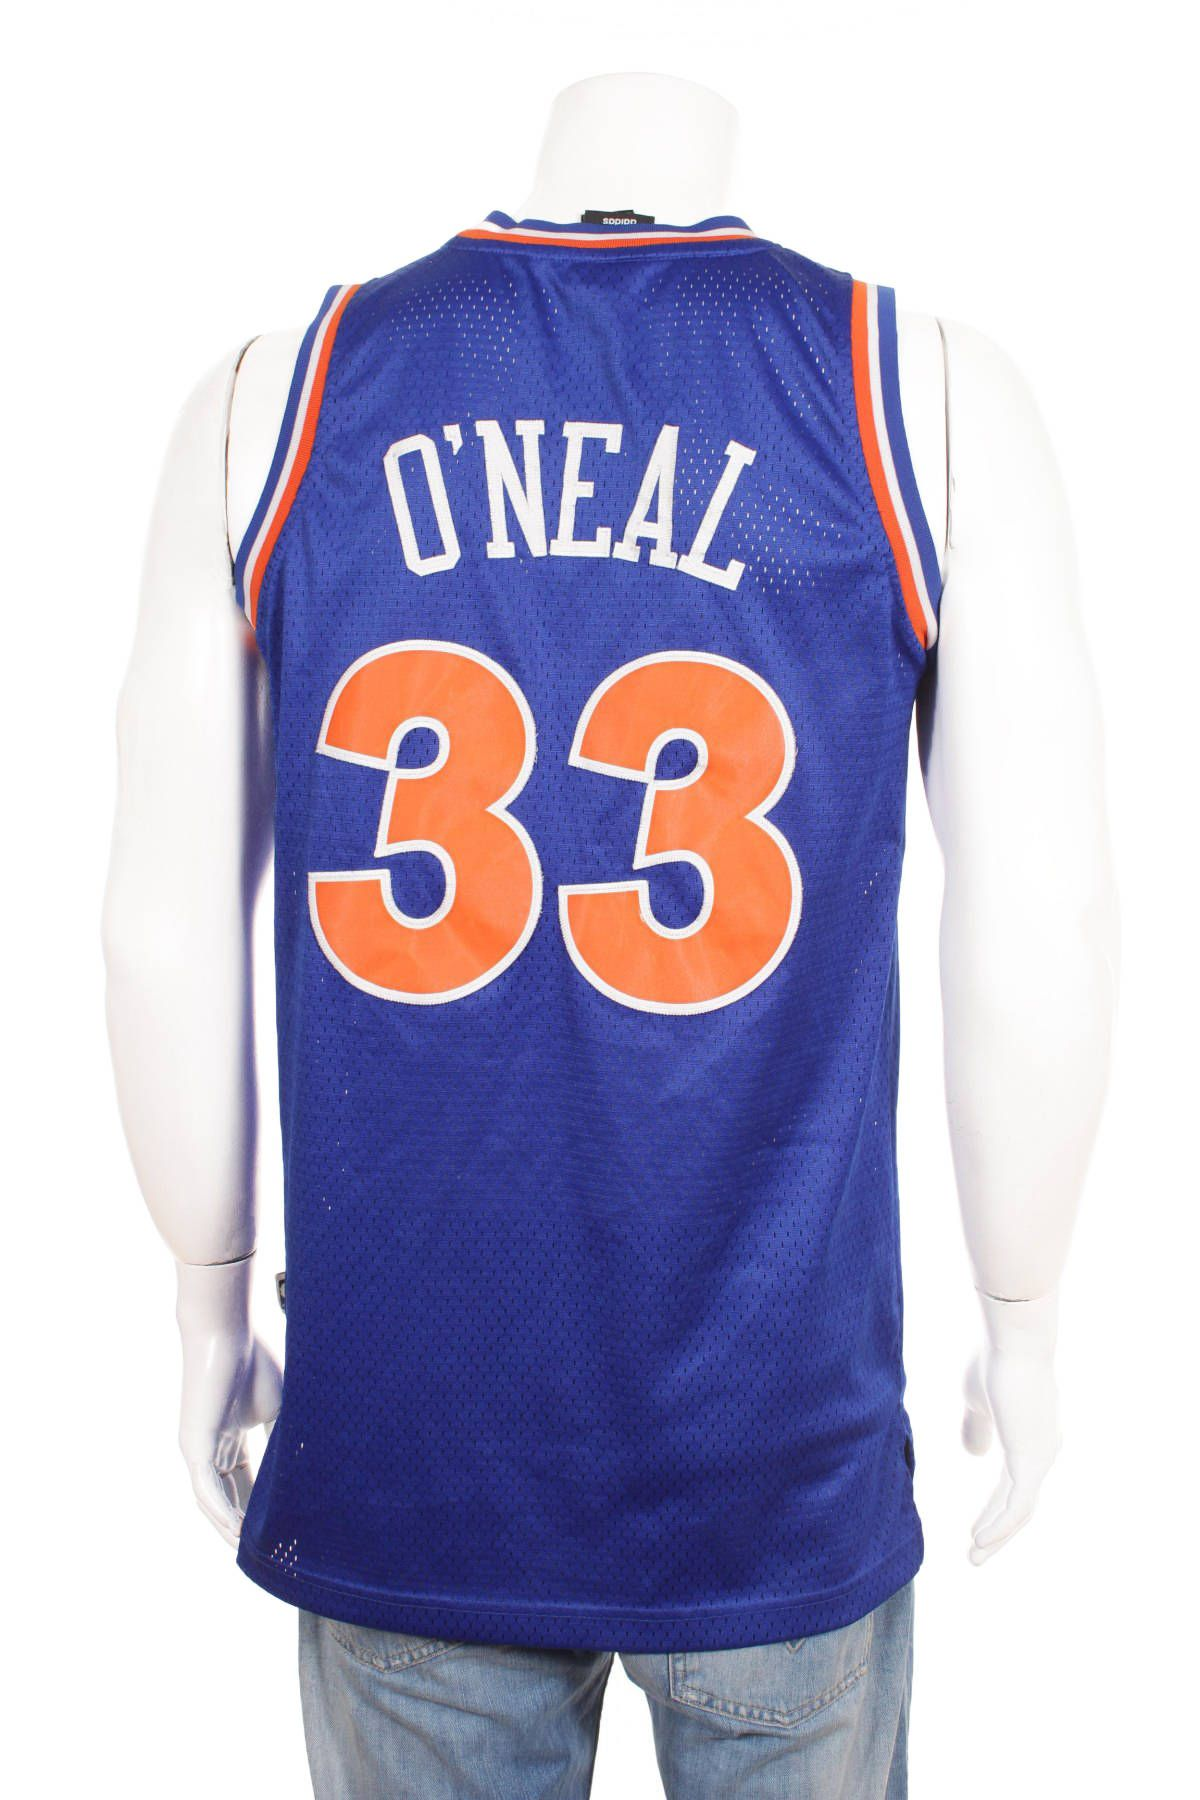 ba5d9c6b2 ... Authentic Jersey Road Vintage Adidas CLEVELAND CAVALIERS Jersey  Shaquille ONeal Shaq 33 NBA basketball sports athletic .